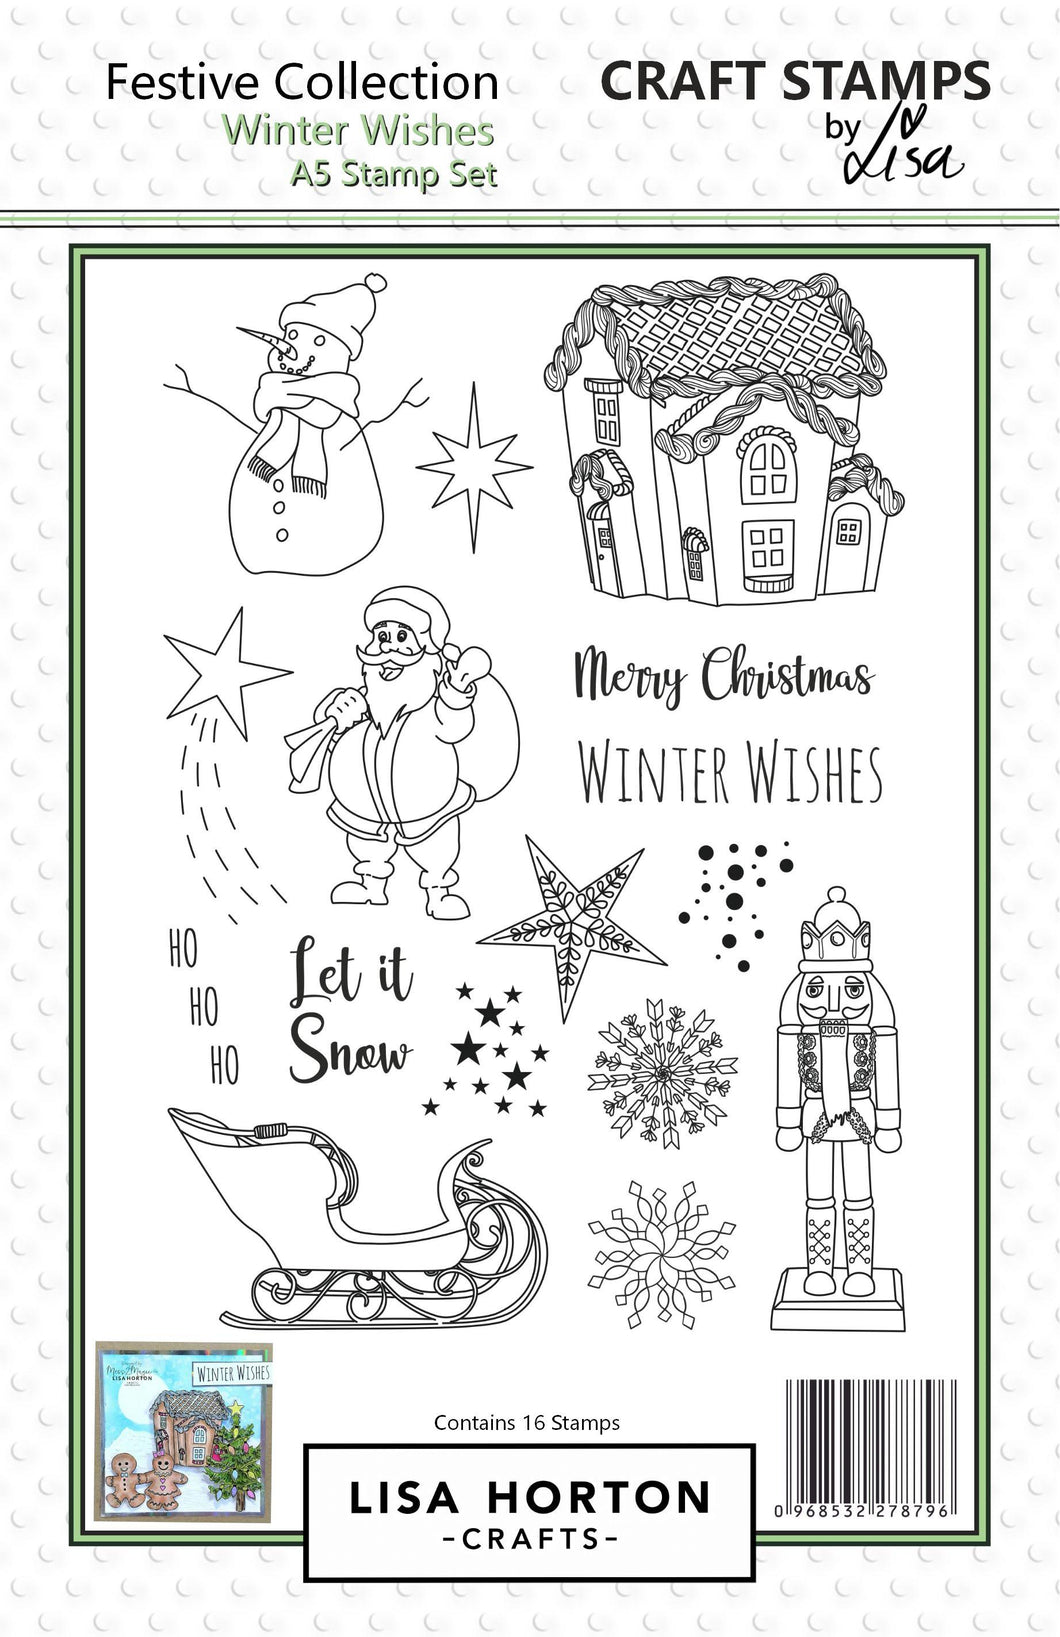 Winter Wishes A5 Stamp Set